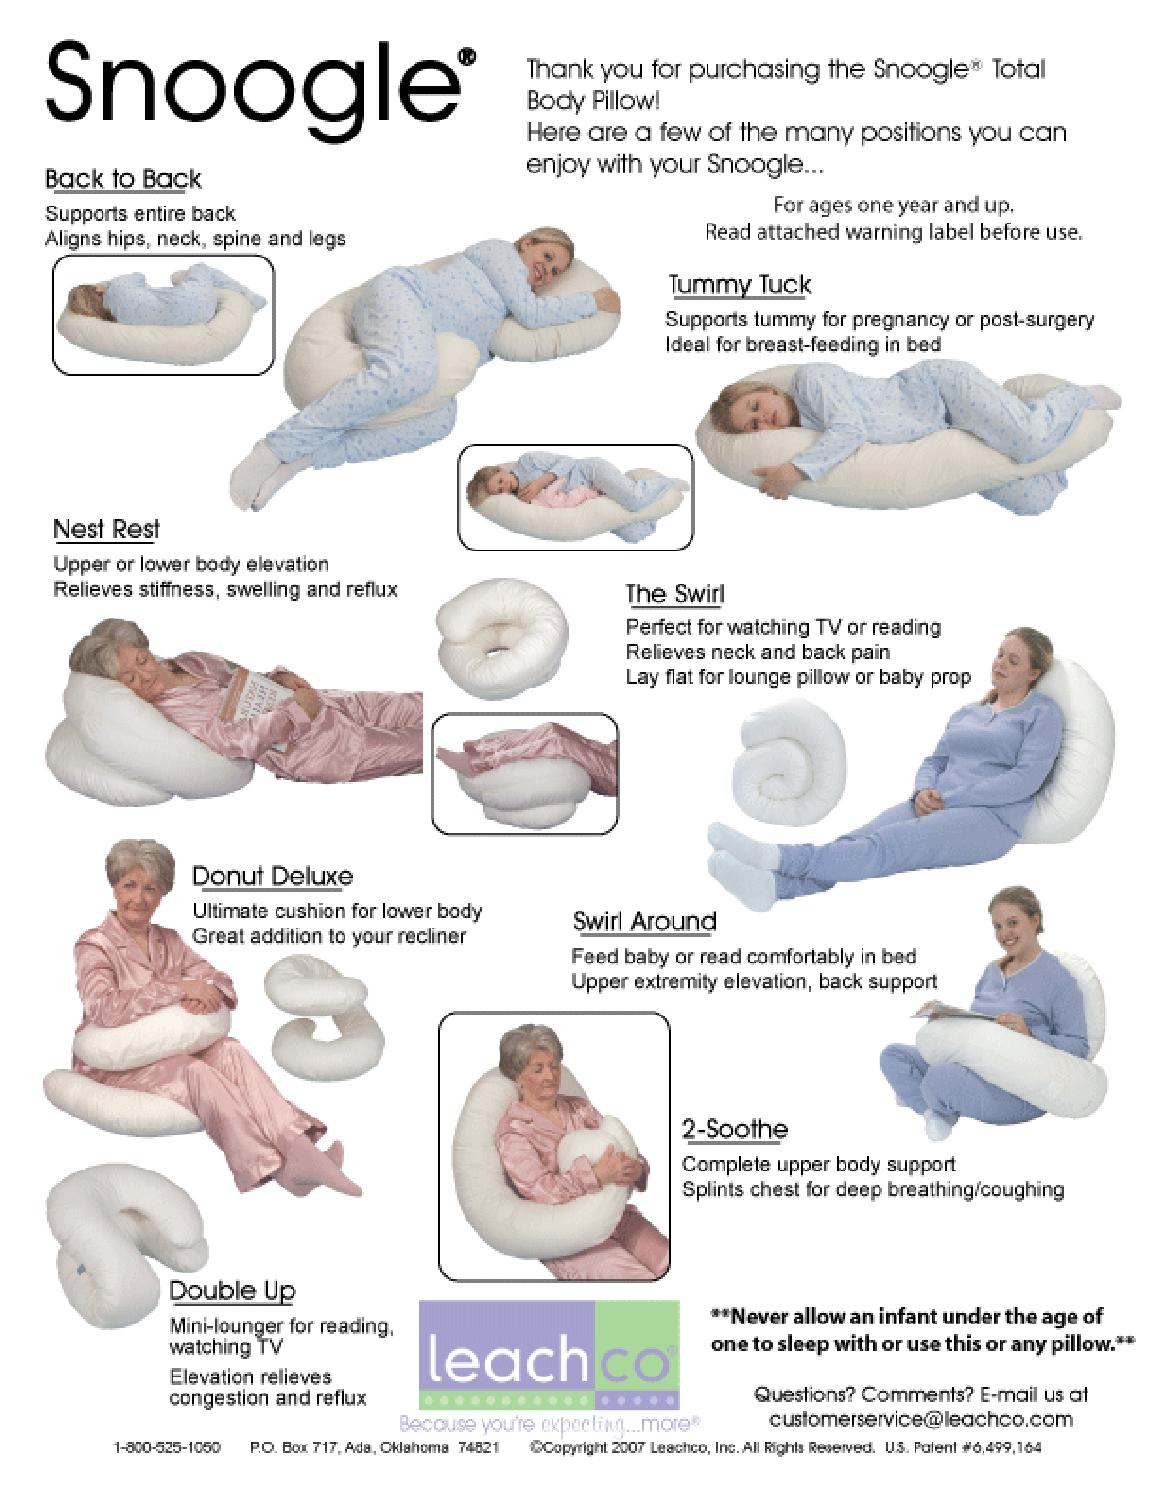 Leachco Snoogle Total Body Pillow How To Use Leachco Snoogle Total Body Pillow By Body Pillow